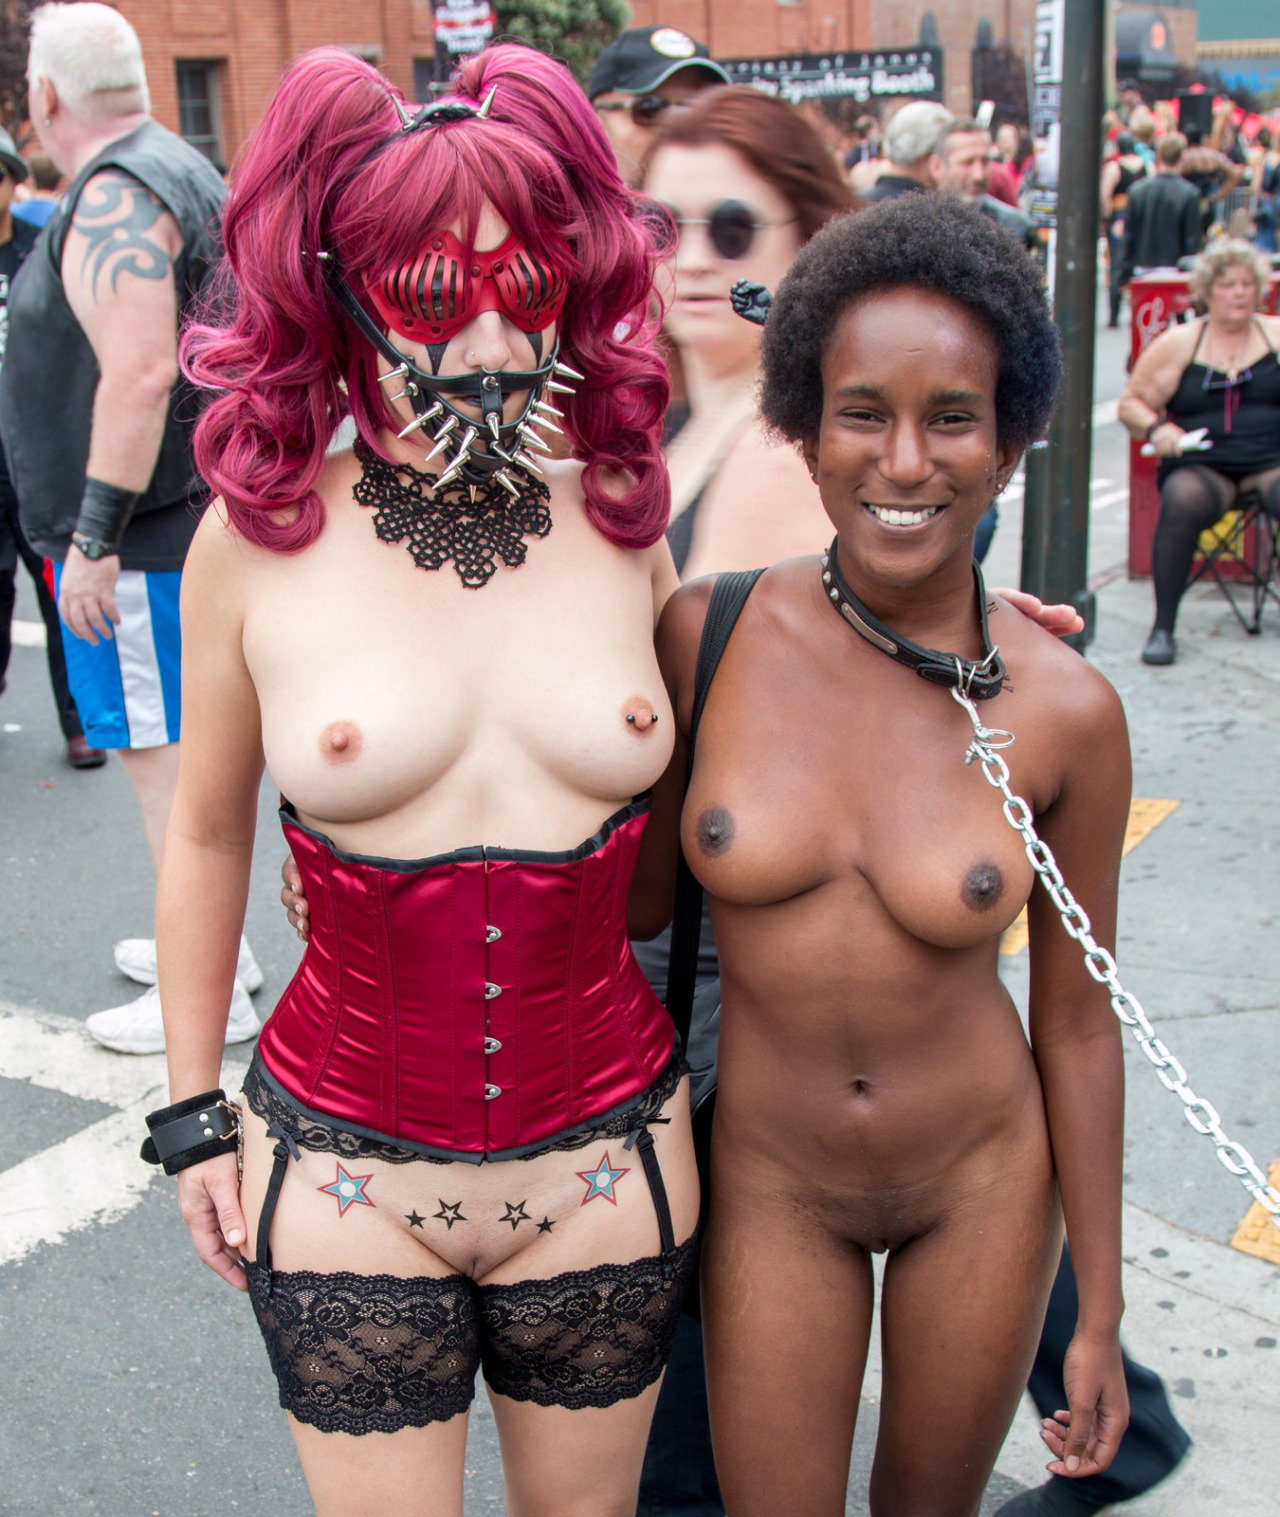 Halloween time for the sluts to be naked, swinger sex nudity